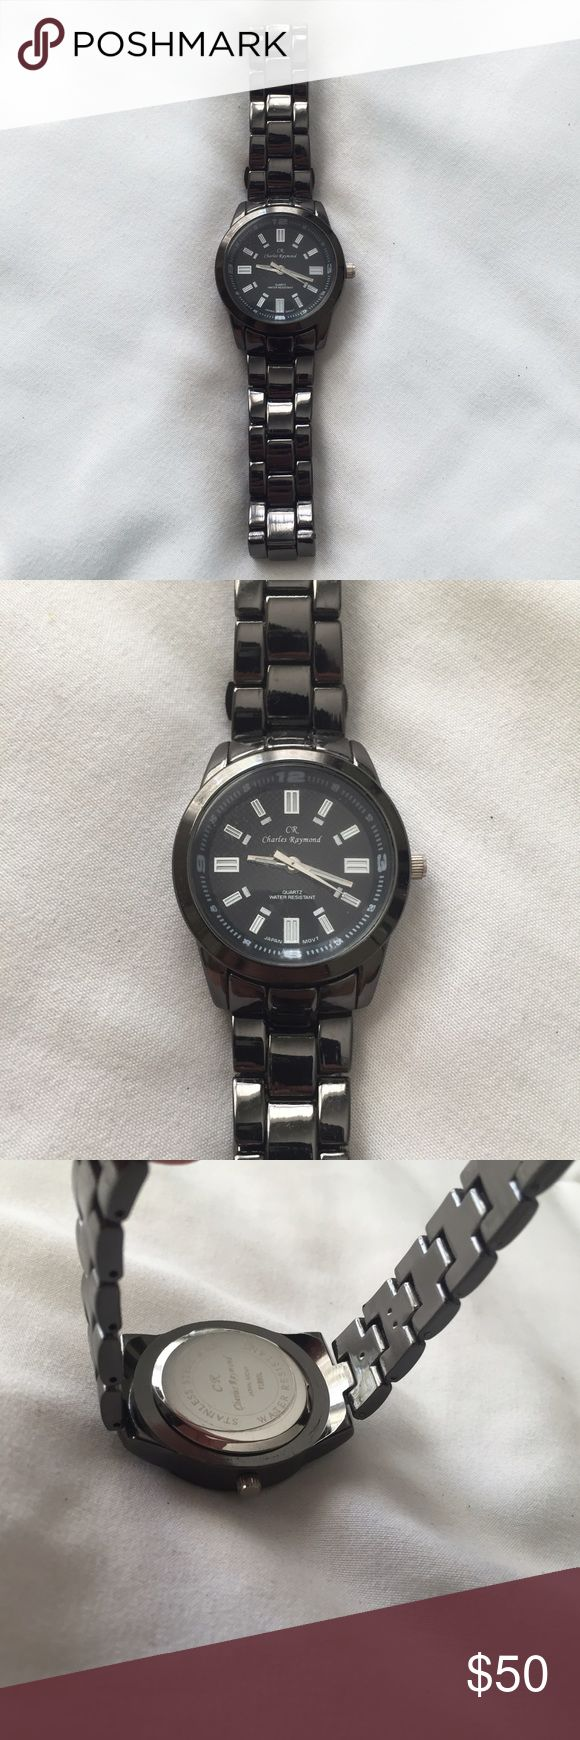 Charles Raymond Watch Dark grey Charles Raymond watch. Water resistant. Never been worn in basically perfect condition (I didn't find any flaws, still even has the plastic sticker on the back). Needs a new battery. OFFERS WELCOMED. Charles Raymond Accessories Watches